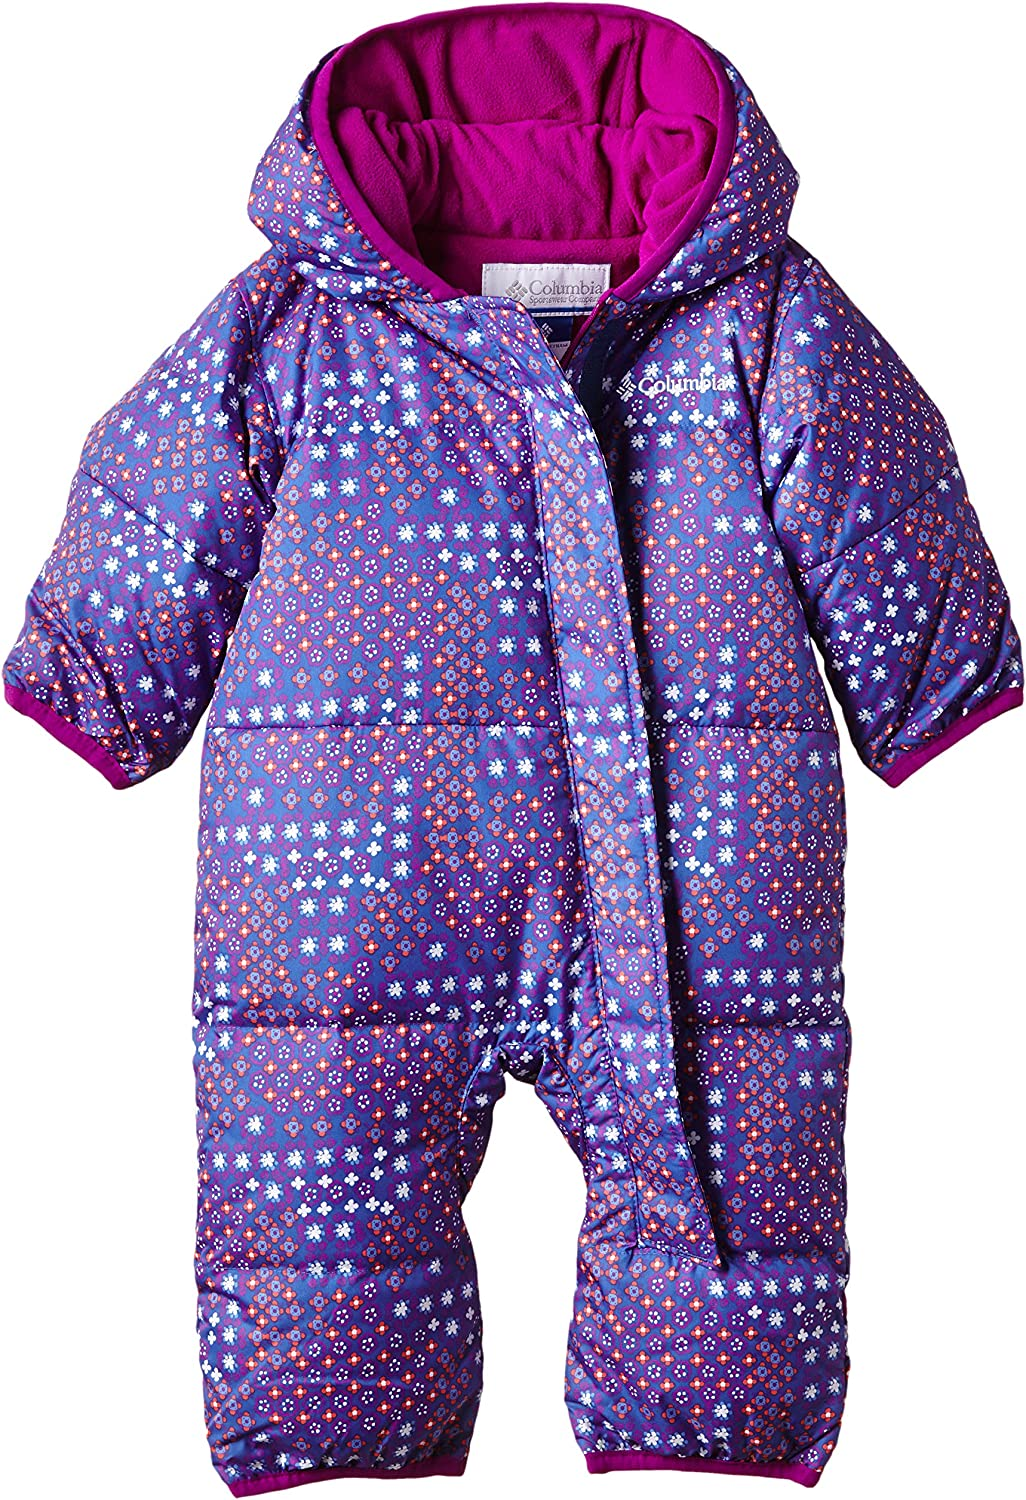 Columbia Babies Snuggly Bunny Bunting All-in-One Suit